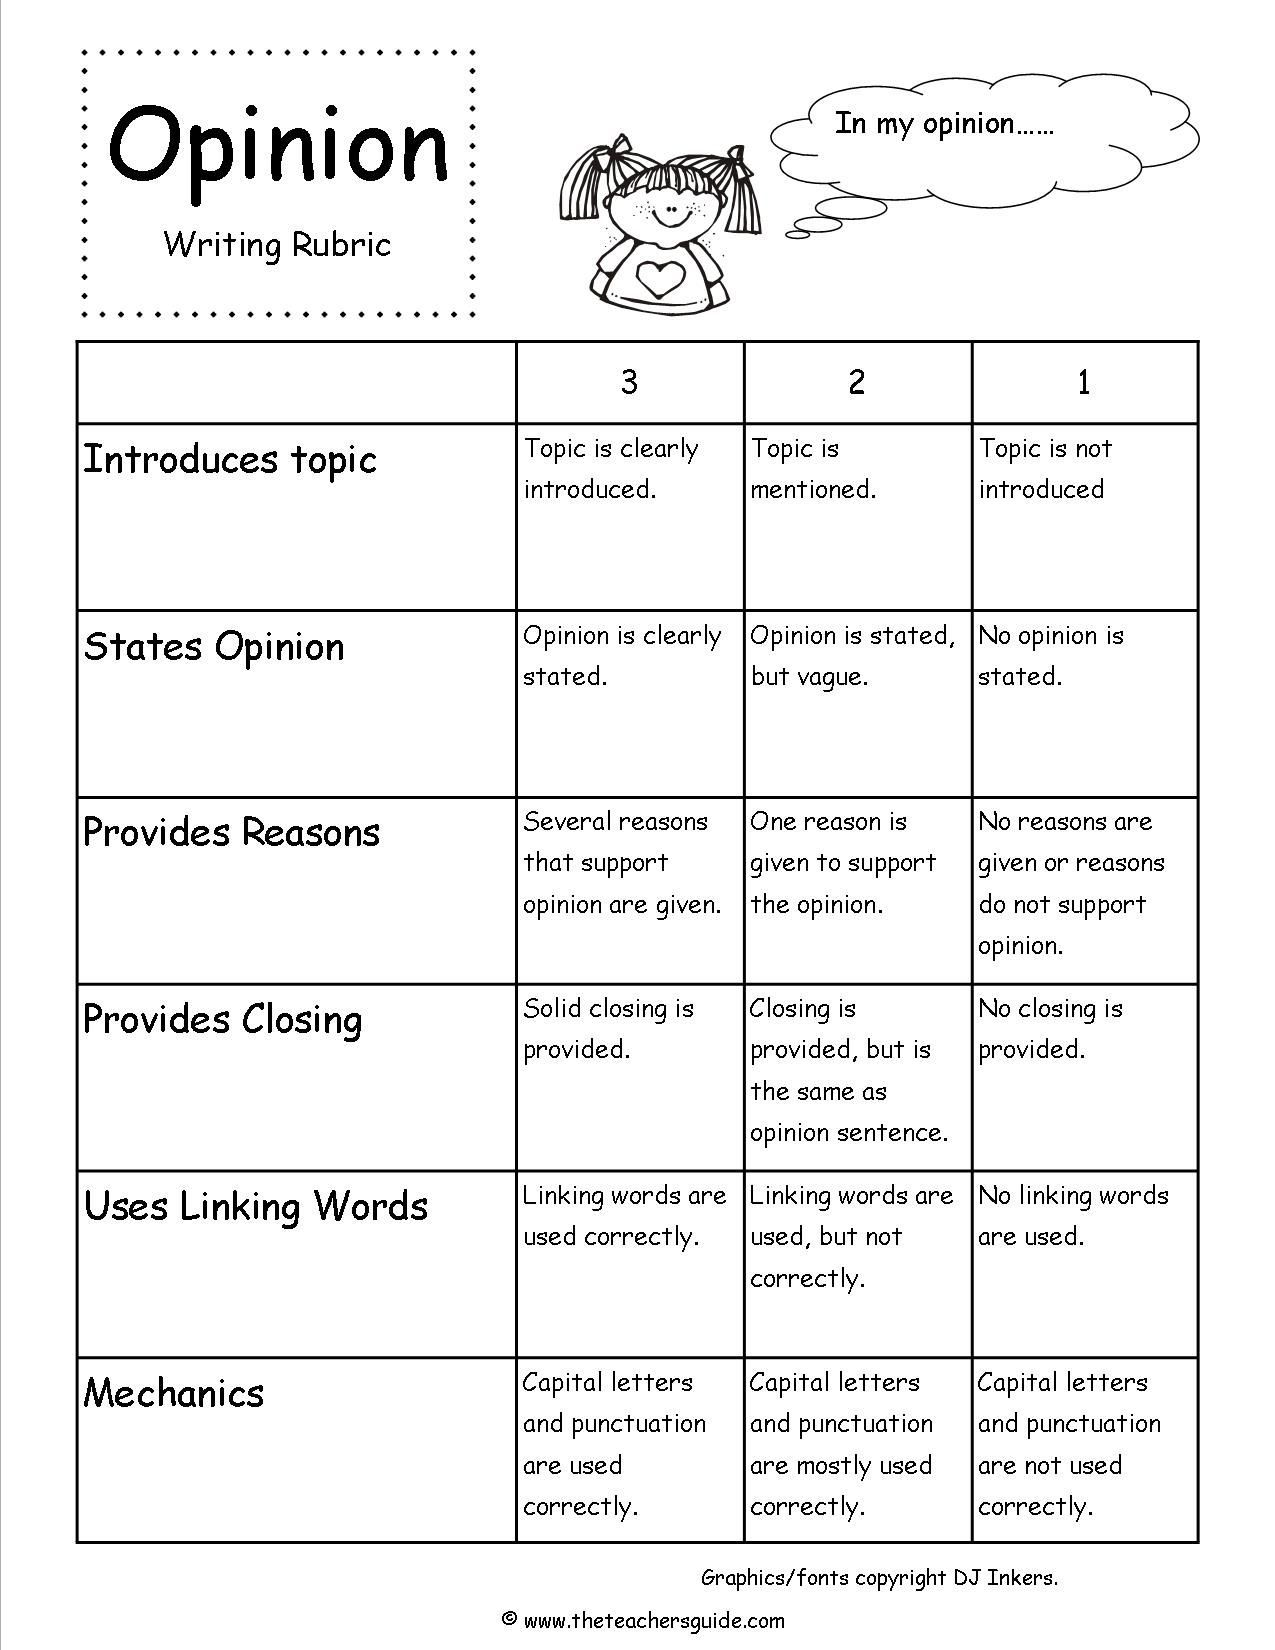 Opinion Writing Prompts Rubric Do You Love Writing Fanfiction Or Want To Learn How Check Ou Writing Rubric Opinion Writing Prompts Persuasive Writing Rubric